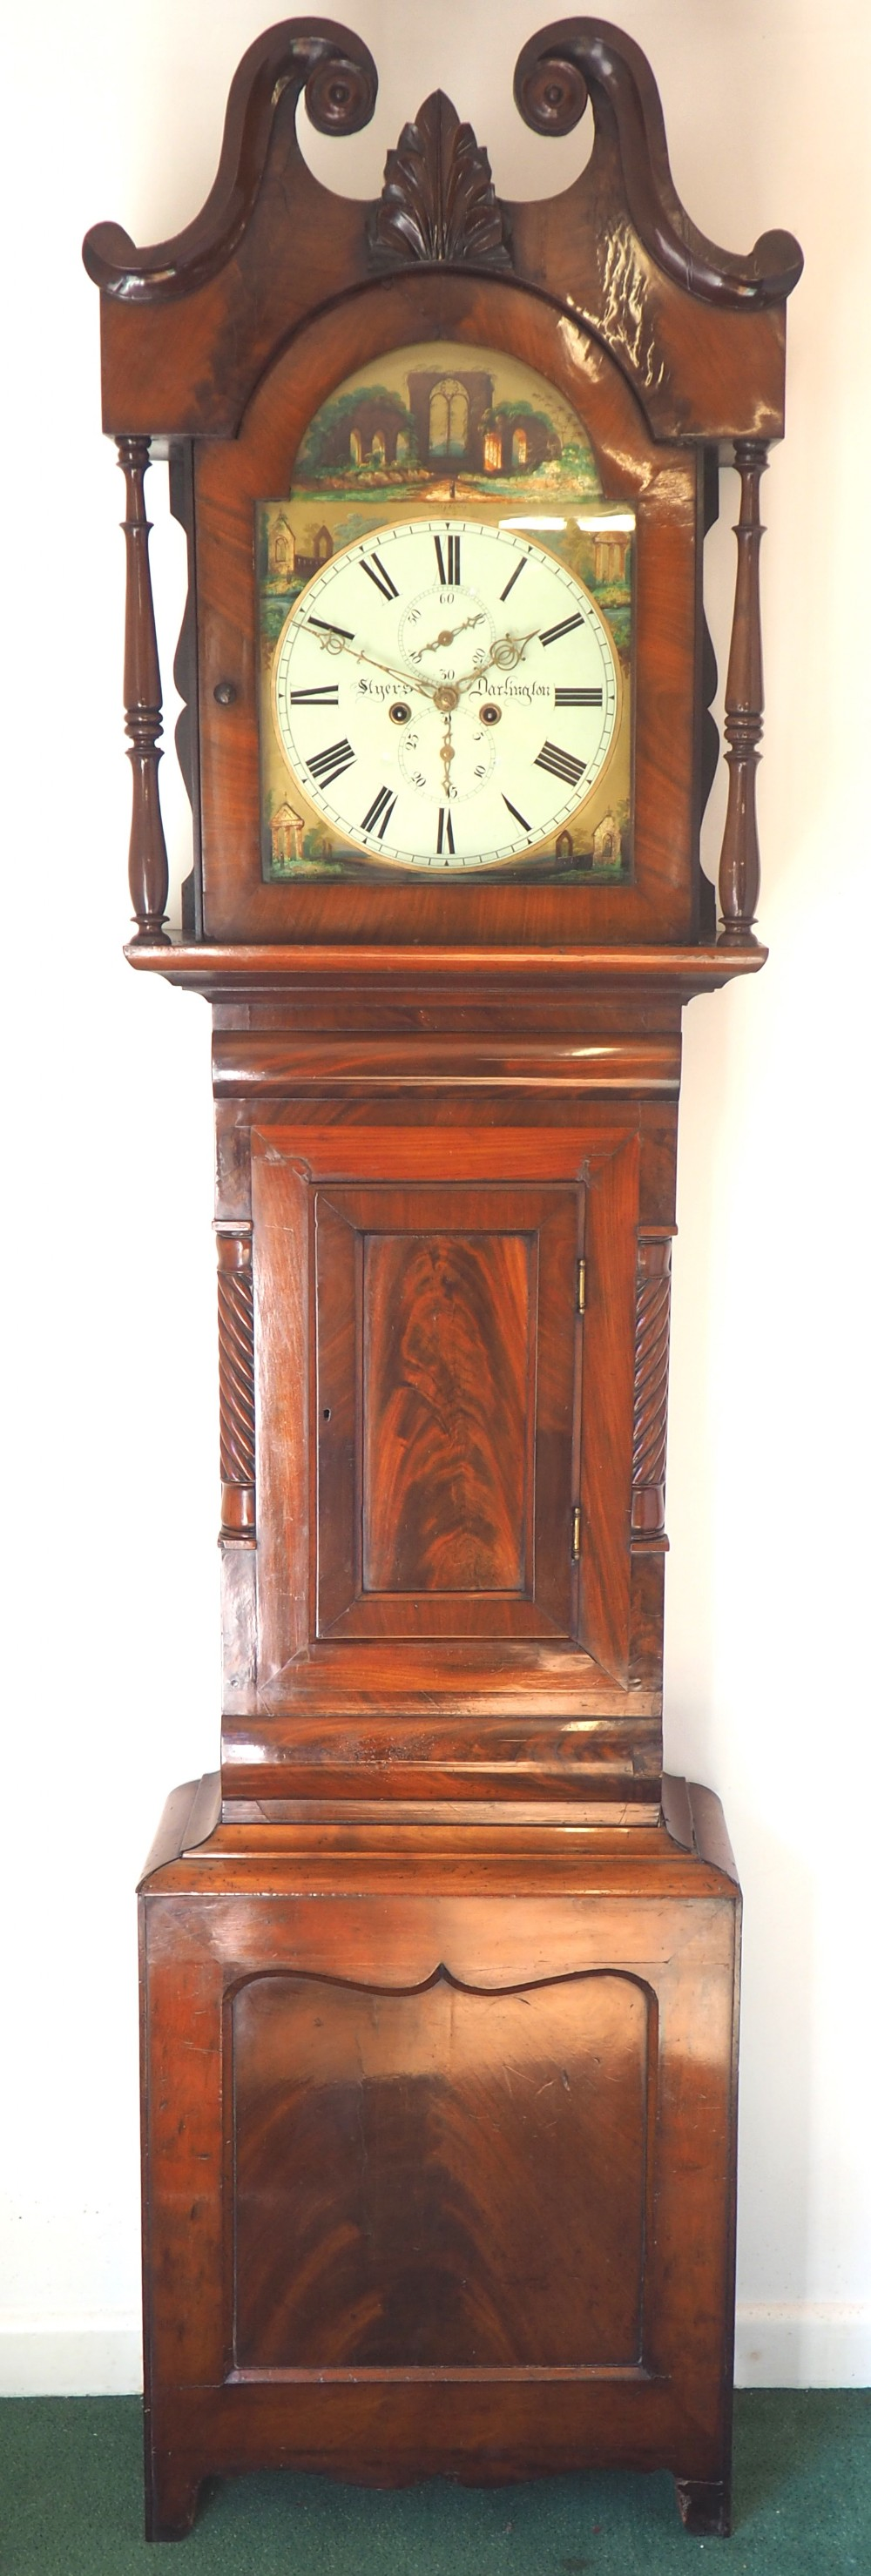 fine english longcase clock styers of darlington 8day grandfather clock with moon roller dial